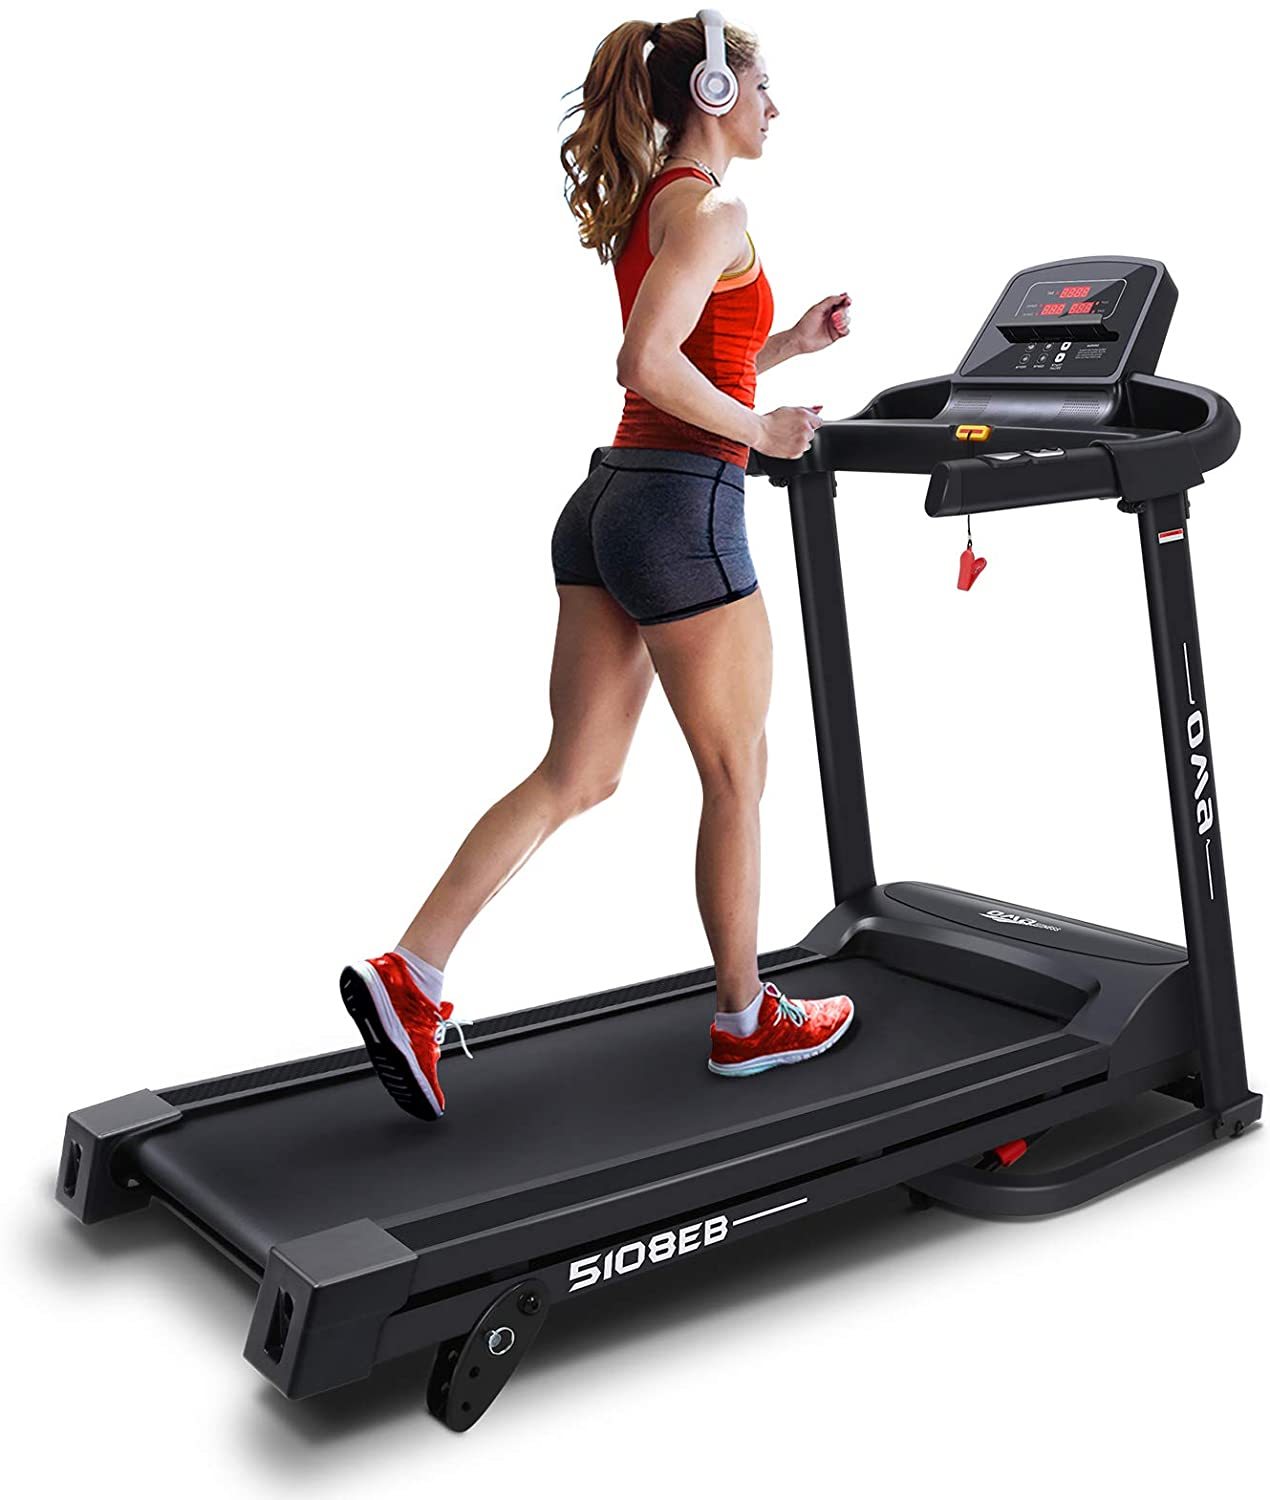 OMA Treadmills for Home 5108EB, Max 2.25 HP Folding Incline Treadmills for Running and Walking Jogging Exercise with 36 Preset Programs, Tracking Pulse, Calories - 2021 Updated Version